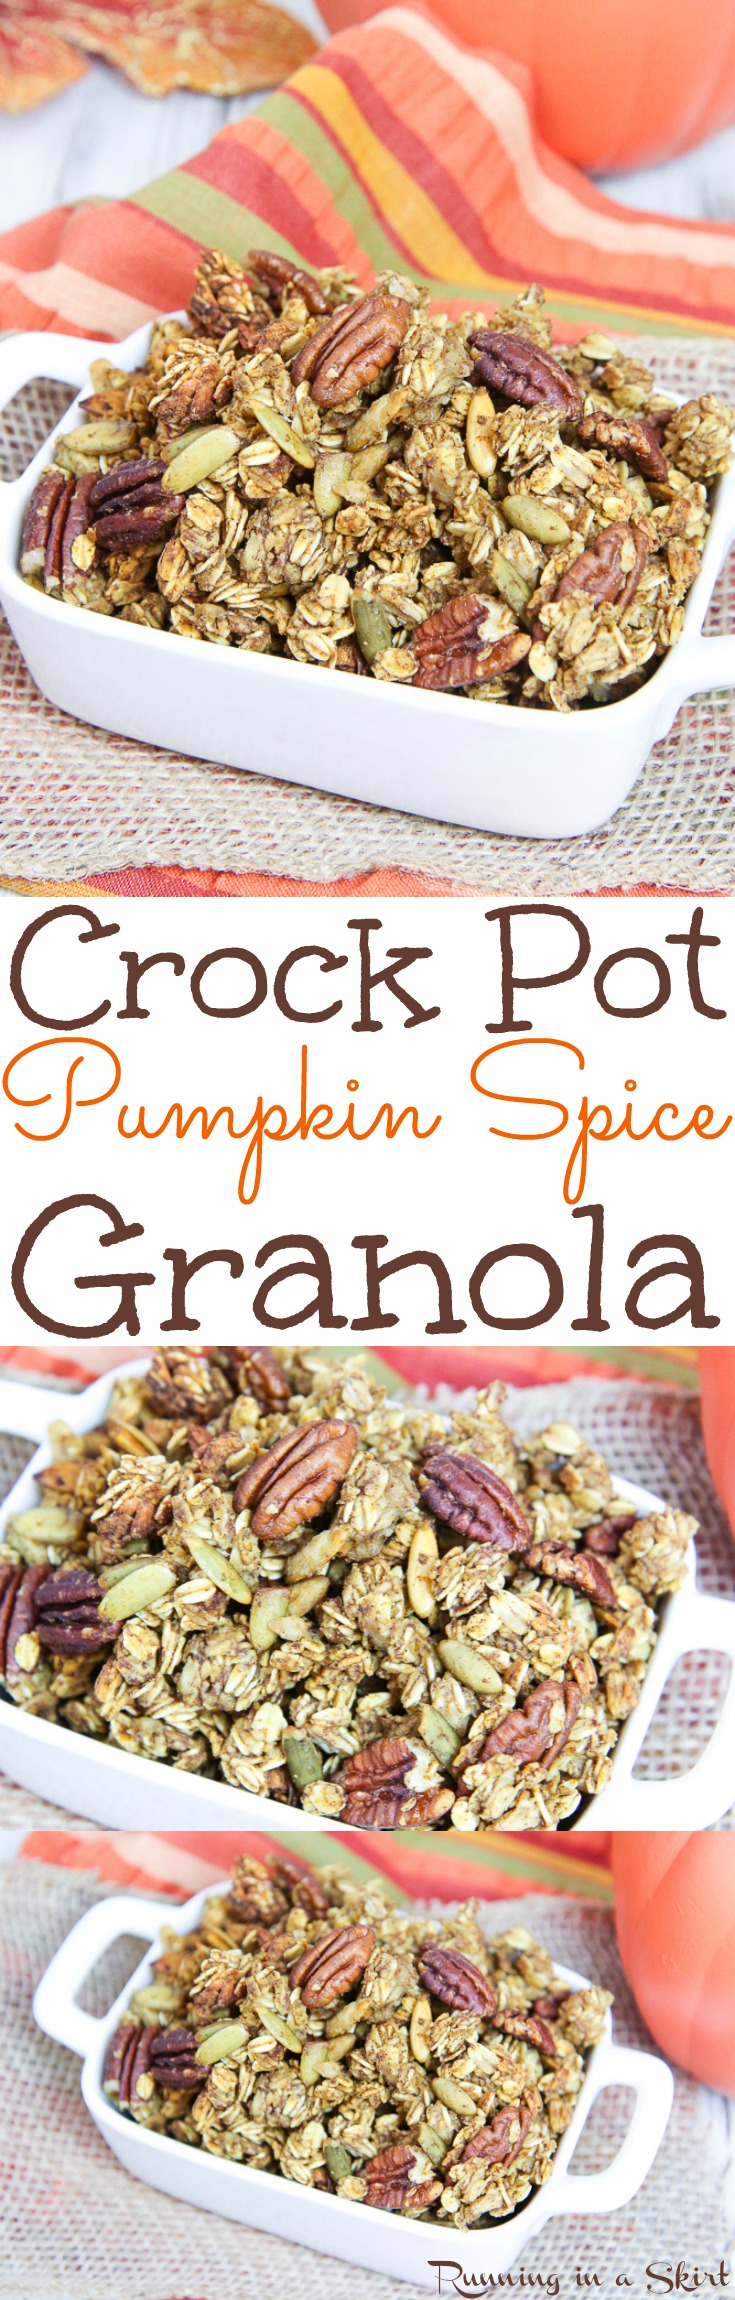 Crock Pot Healthy Pumpkin Spice Granola recipe.  An easy and simple fall breakfast or snack! Filled with pecans, pumpkin seeds and oatmeal.  Made in the crock pot or slow cooker. / Running in a Skirt via @juliewunder